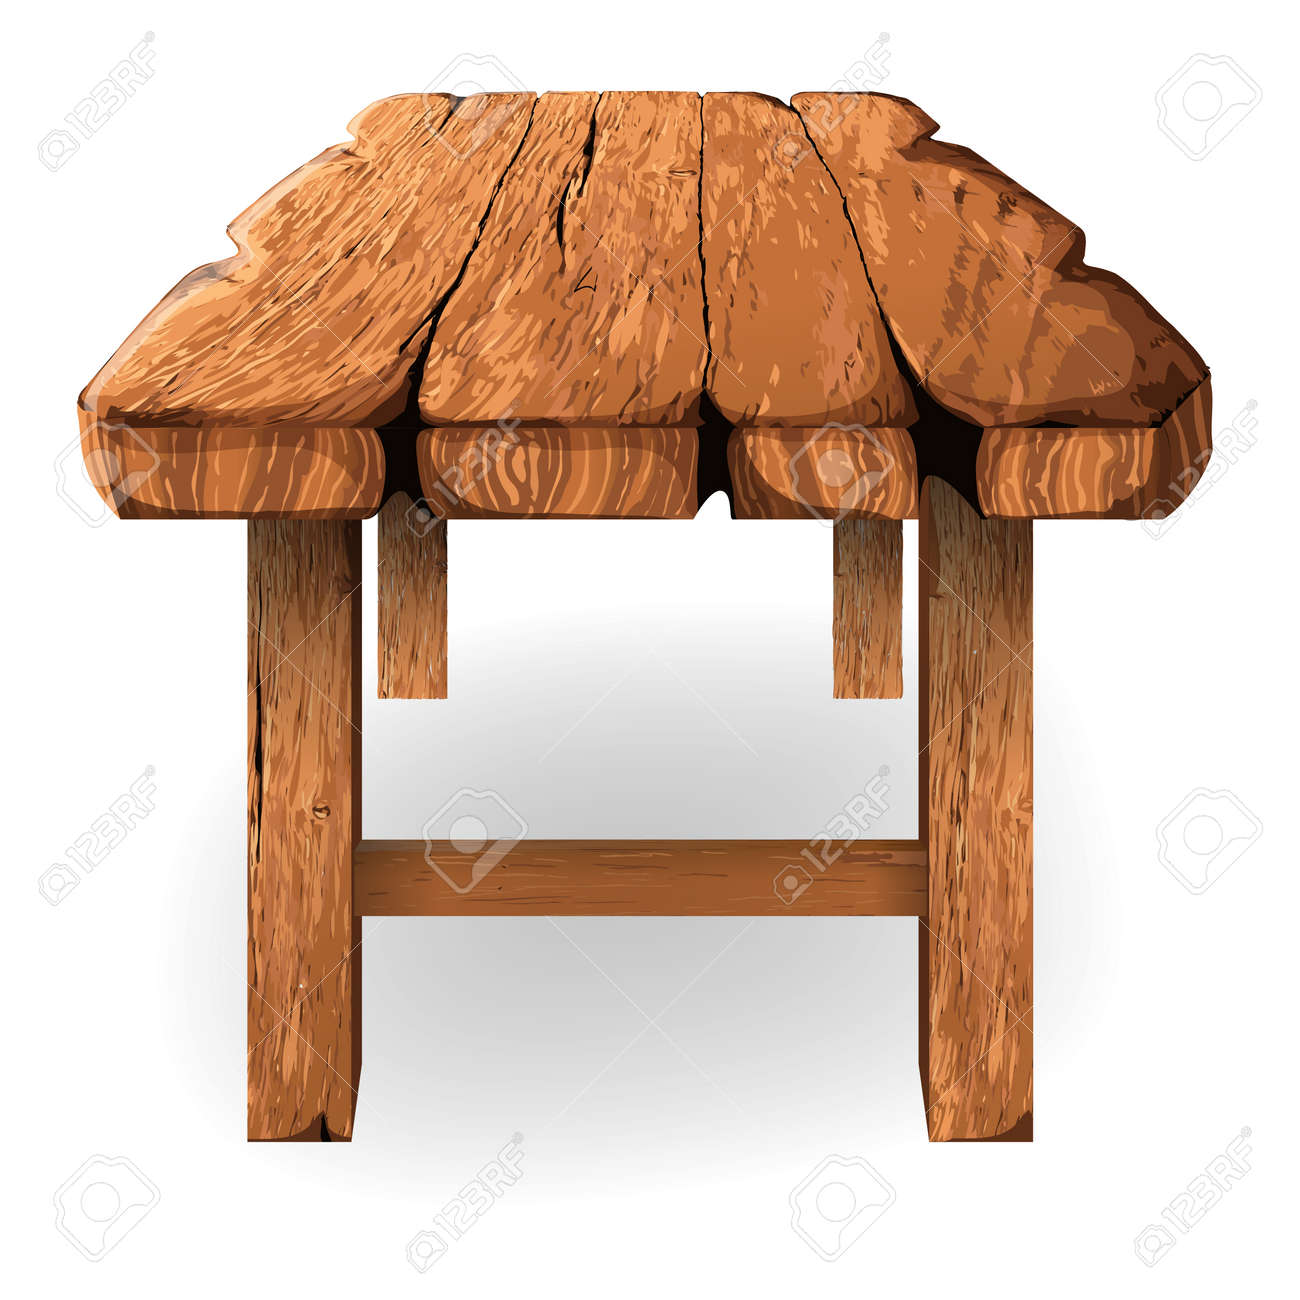 Bon Illustration Of Wooden Table Made Of Thick Rough Planks Stock Vector    60579605